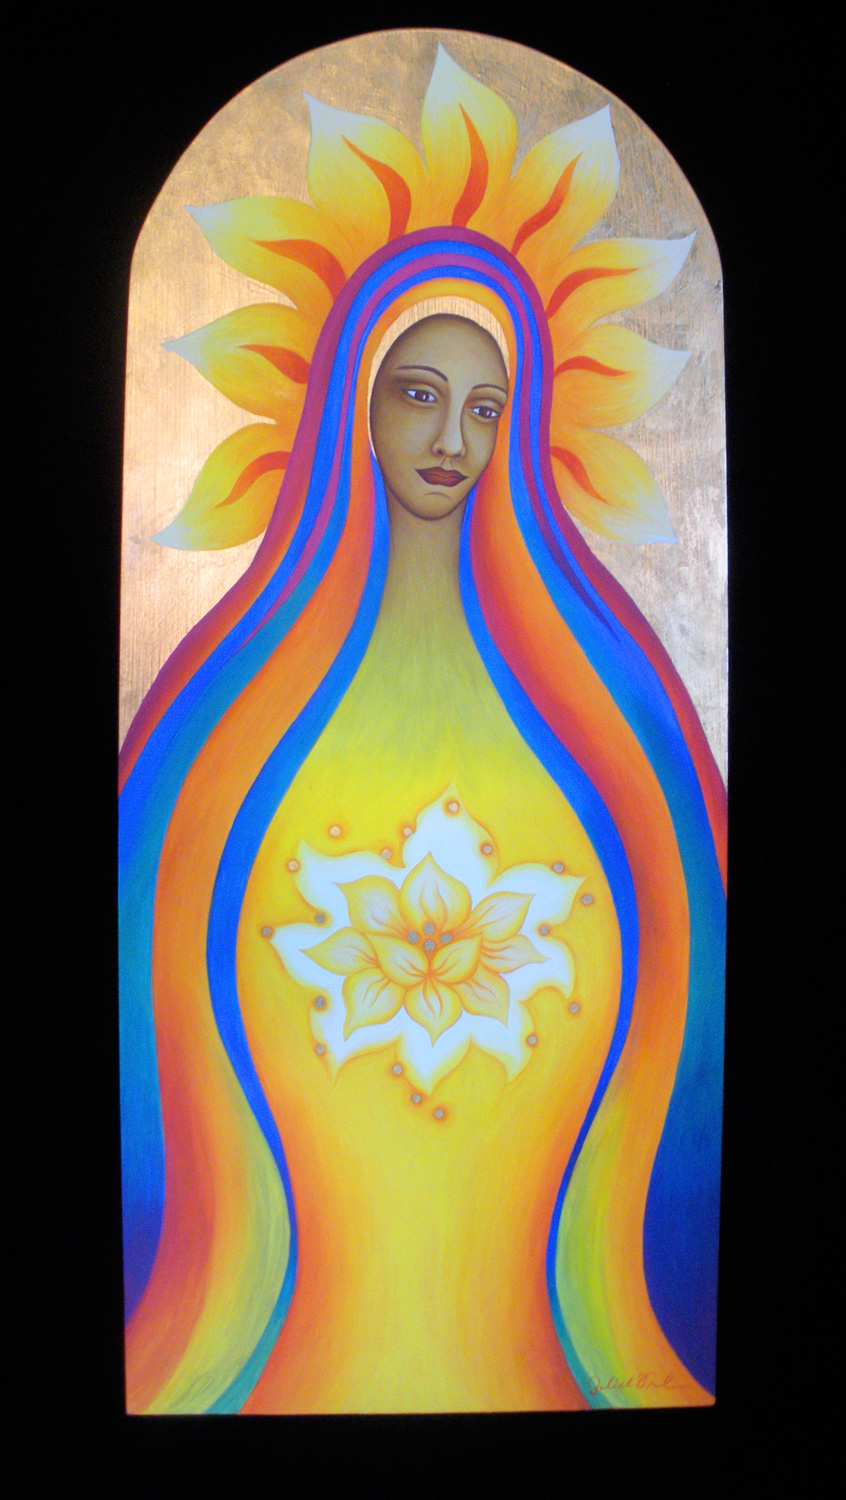 "Oil & 22kt gold leaf on wooden panel - 38"" x 16"" - $1,900 USD"